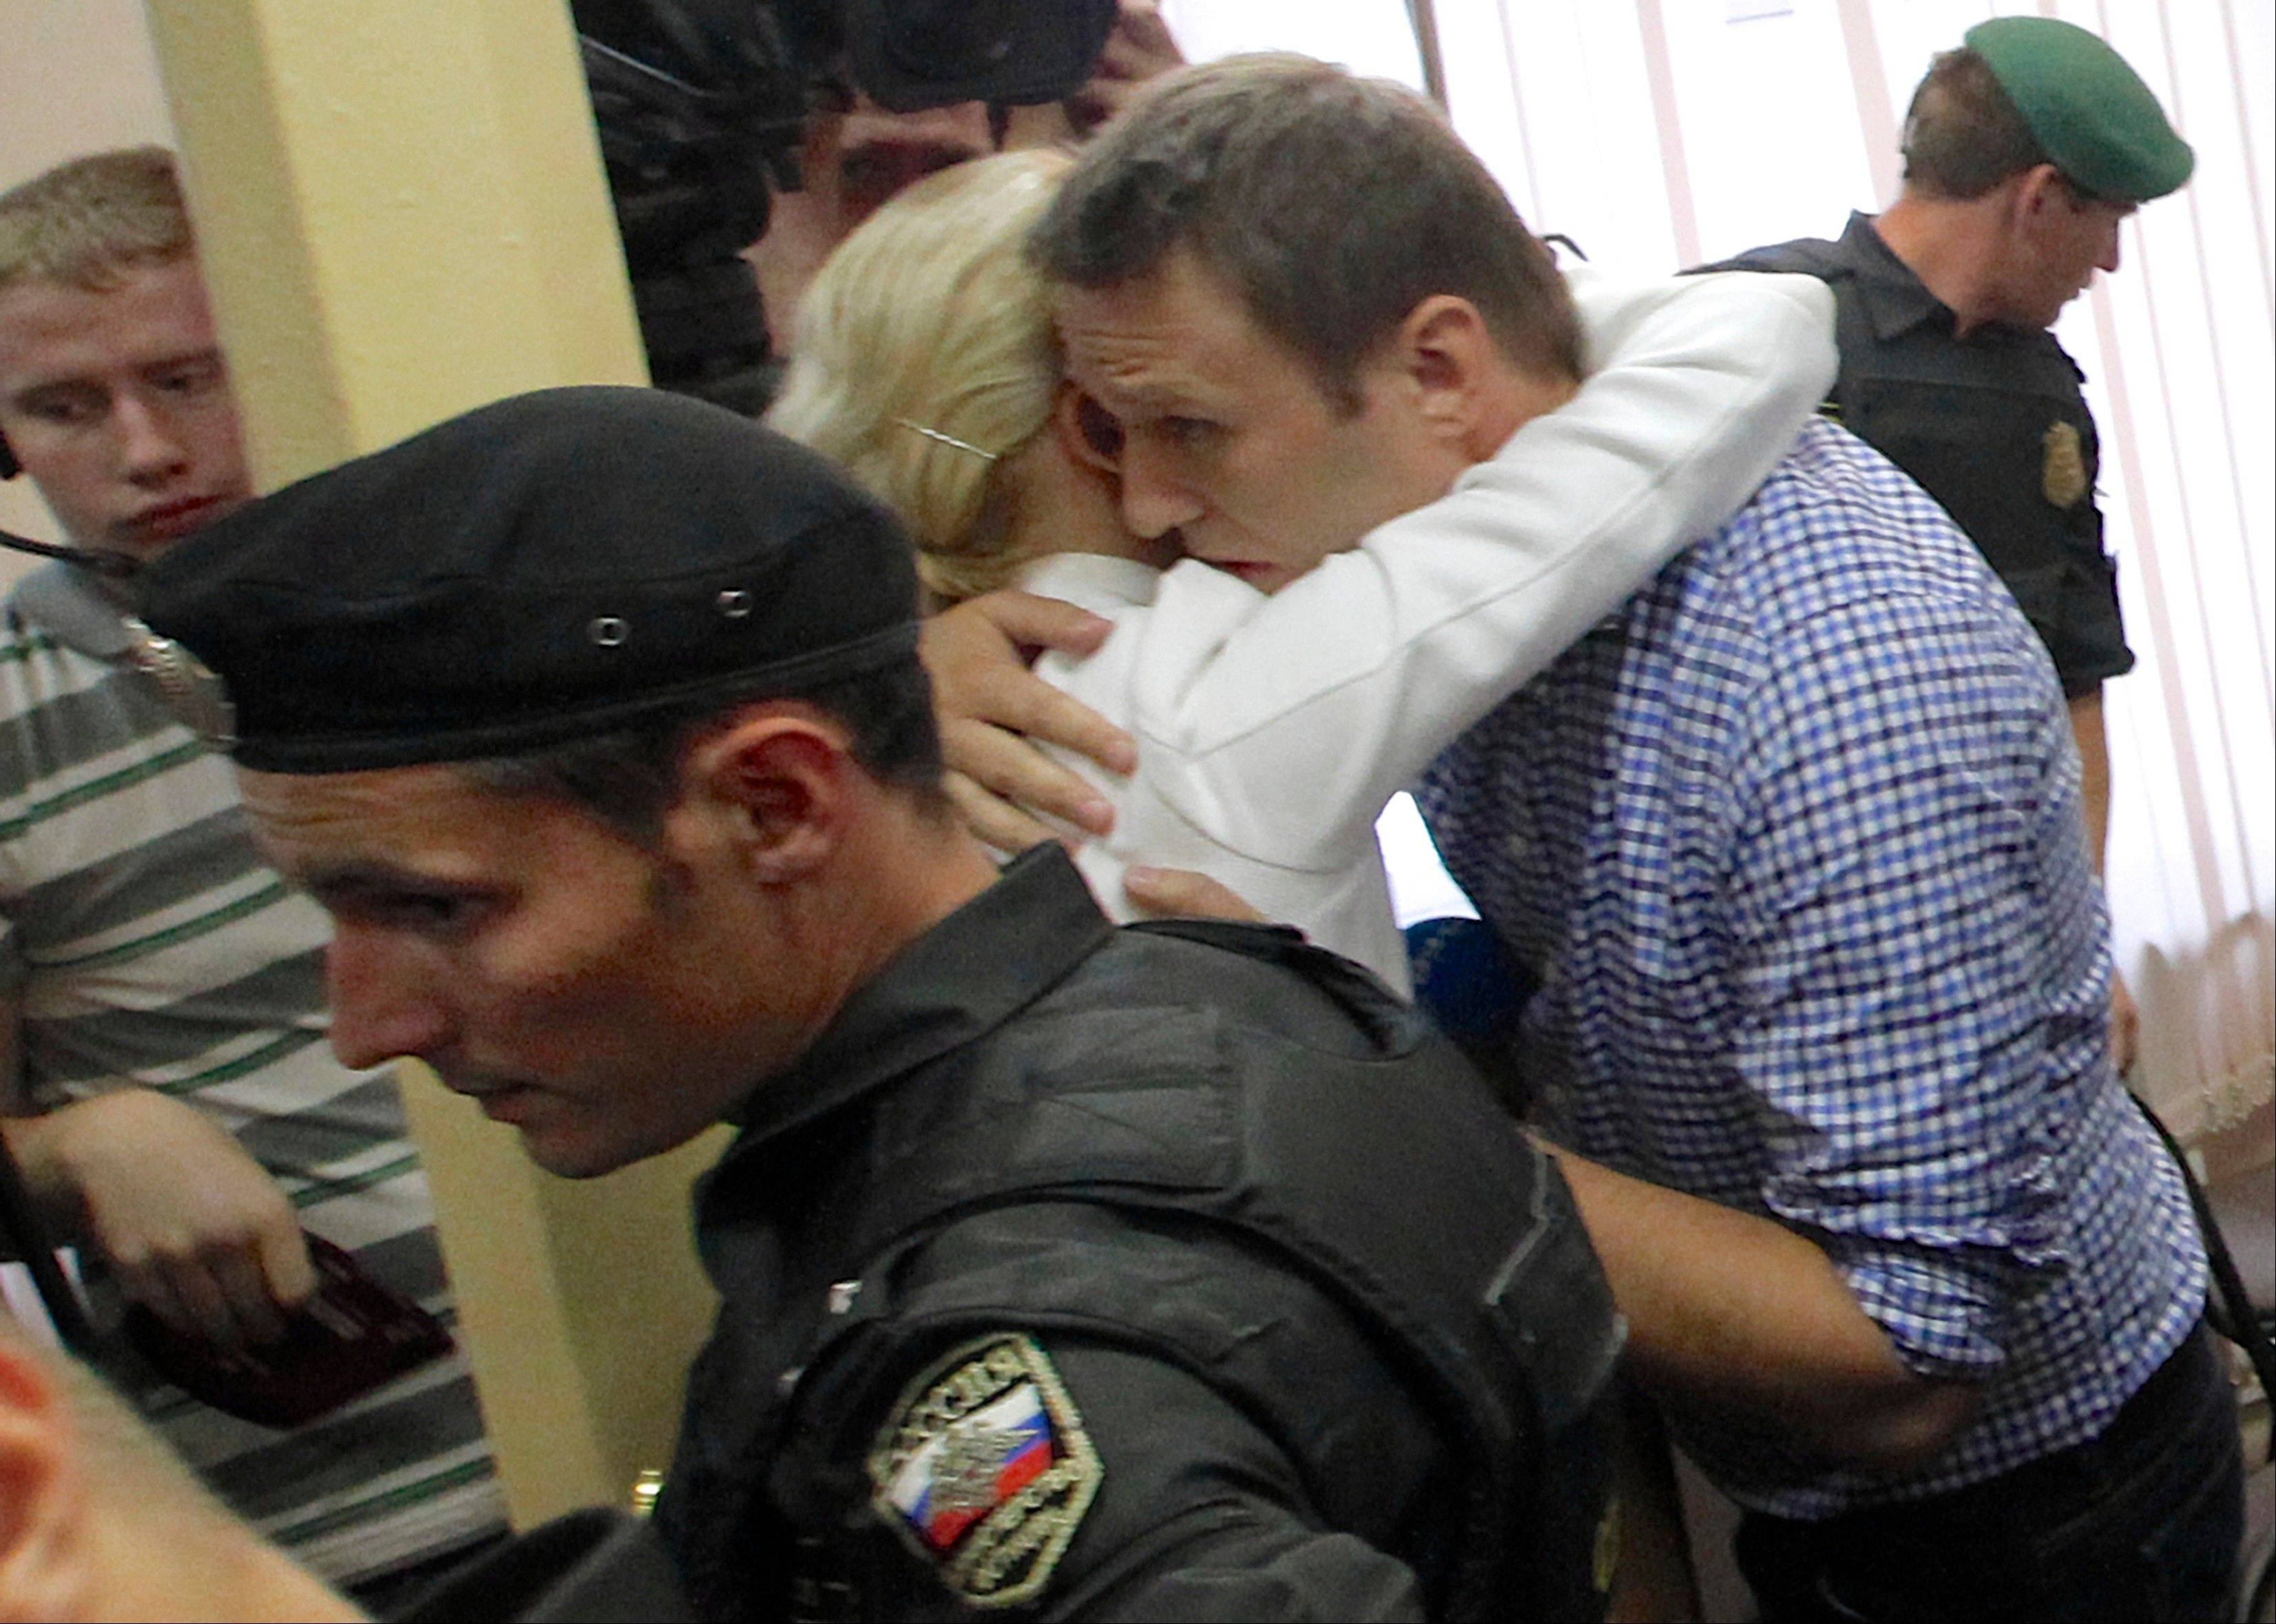 Russian opposition leader Alexei Navalny, embraces his wife Yulia at a court in Kirov, Russia Thursday, July 18, 2013. Alexei Navalny, one of the Russian opposition's leading figures, was convicted of embezzlement Thursday and sentenced to five years in prison.